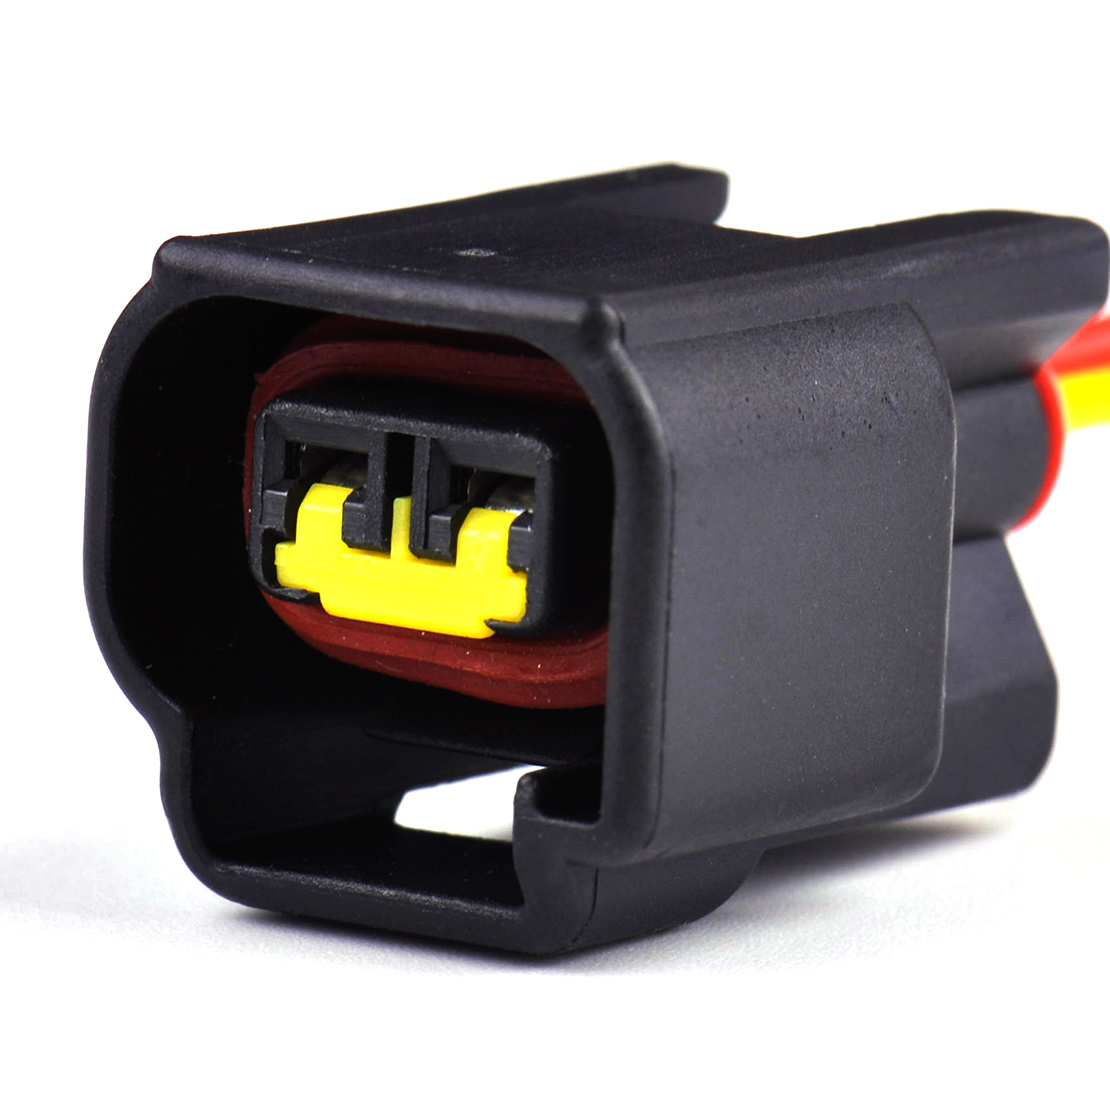 US $11 74 13% OFF|CITALL 8pcs Ignition Coil Harness Connector Modular for  Ford Focus Mustang Edge 4 6L 5 4L 6 8L 1991 1992 1993 1994 1995 2011-in